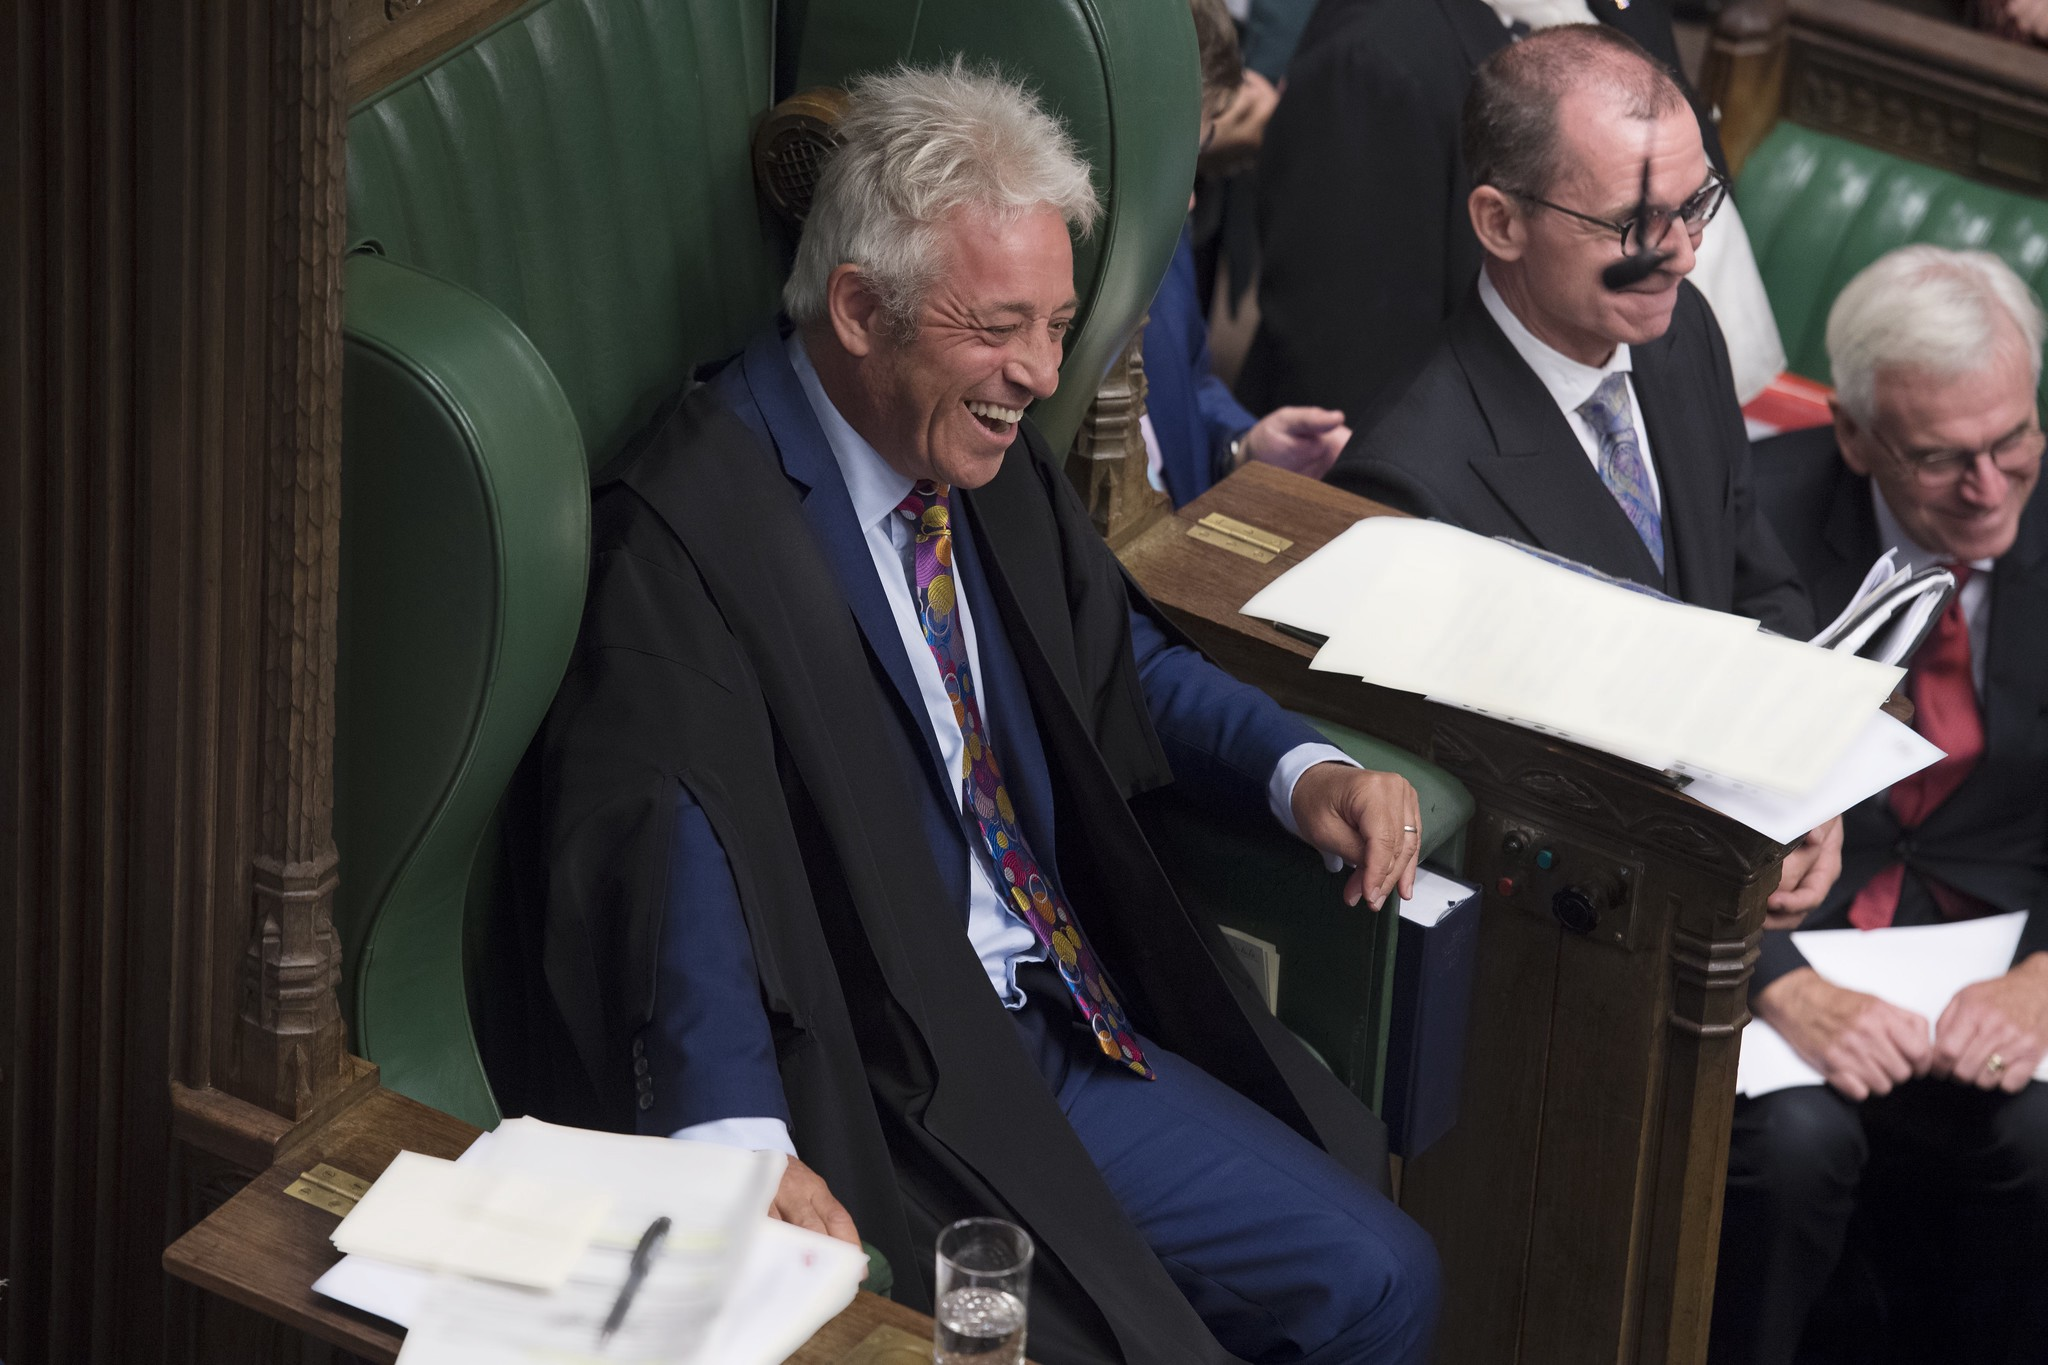 Pic of John Bercow smiling in the green House of Commons speakers seat